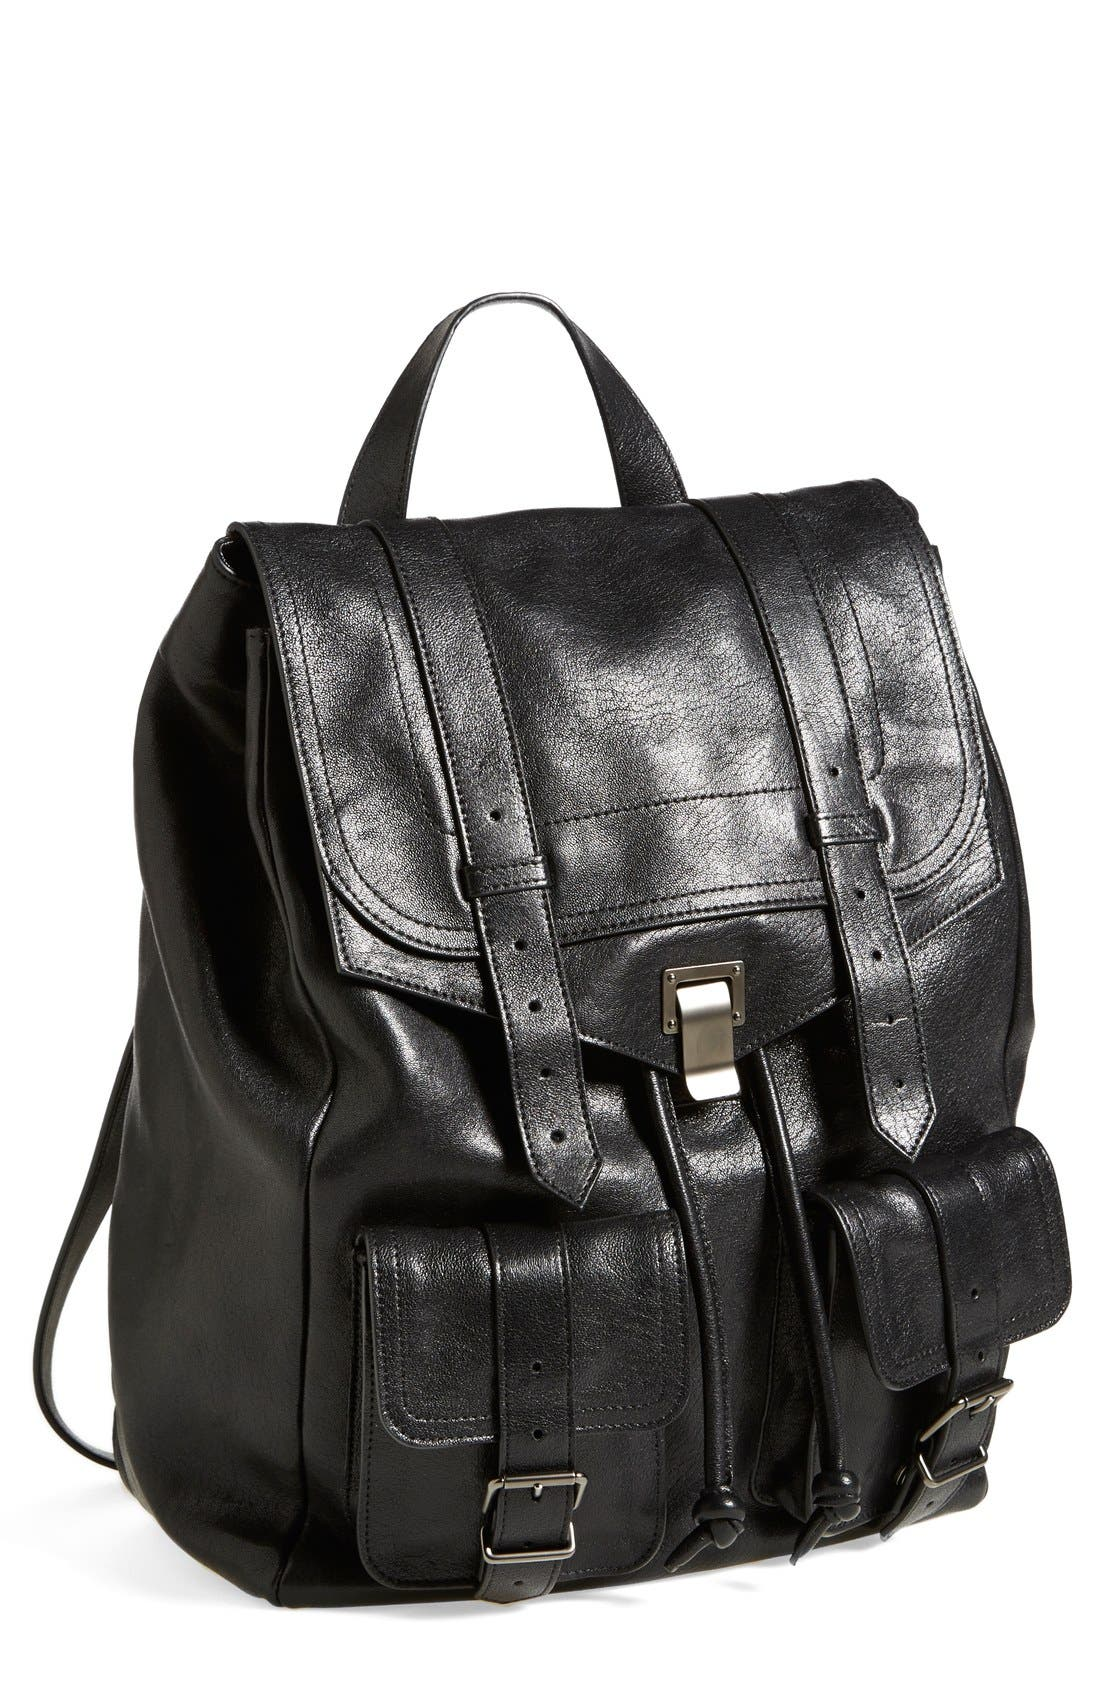 Main Image - Proenza Schouler 'PS1' Leather Backpack